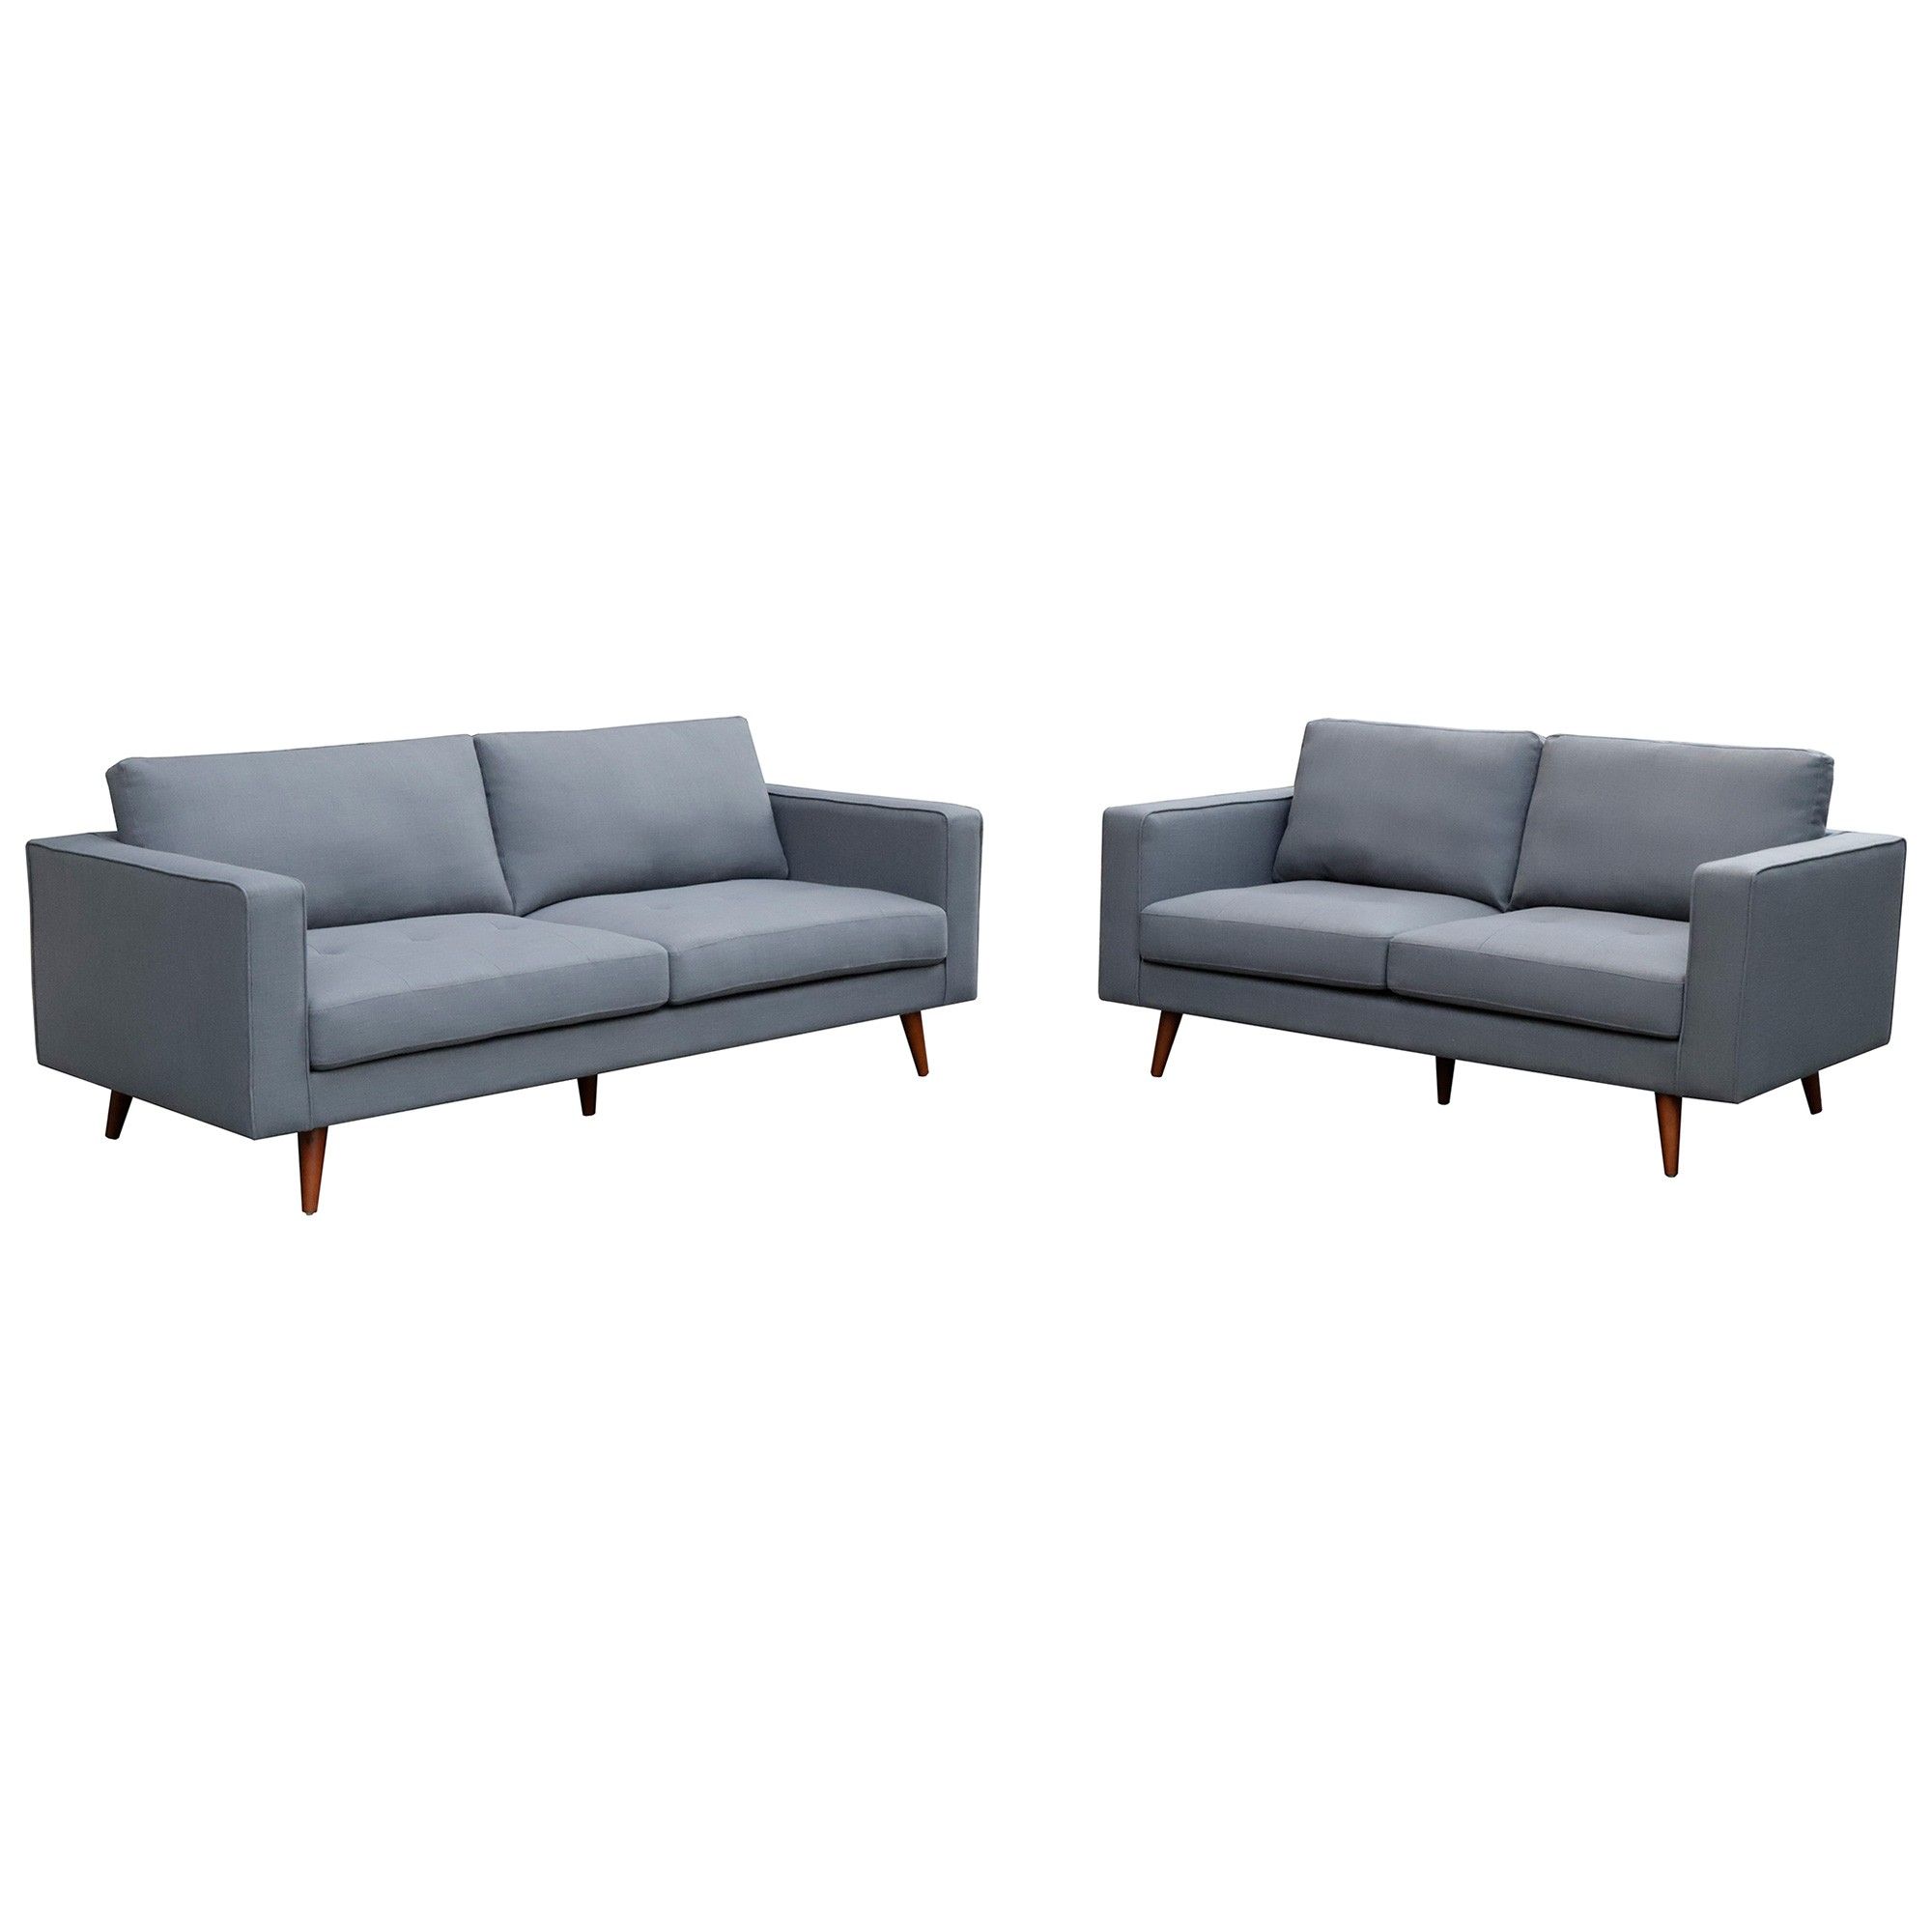 Brittany 2 Piece Fabric Sofa Set, 3+2 Seater, Dark Grey